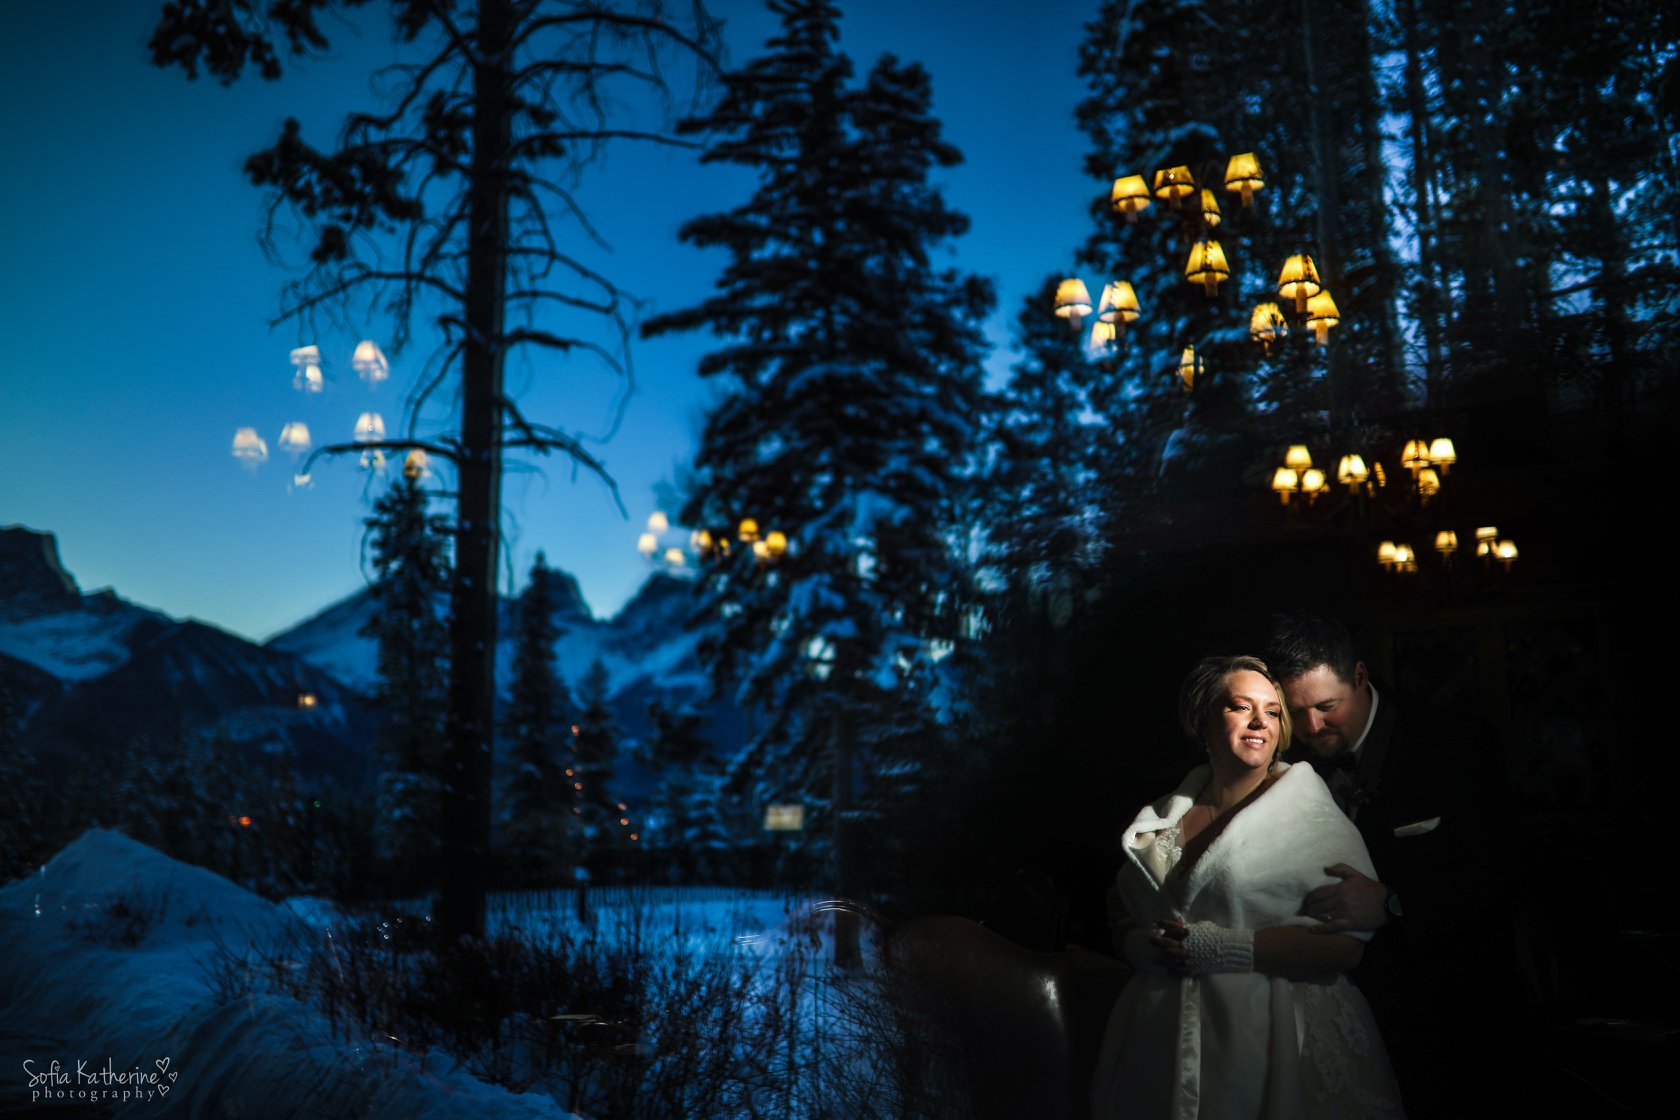 Alicia & ShaunSILVERTIP CanmoreNew Year's Eve 2017 - We had Sofia do our wedding on New Years Eve, in Canmore. Her and her assistant Paulina went out of their way to make us feel comfortable as possible. Sofia was a blast to get to know, and took amazing shots during the engagement shoot we did in Calgary, and during the fireworks during the reception. It was amazing to see her work, and her thought process behind every shot she takes. I can't stress enough the quality of her work enough. I would recommend her in a heart beat.